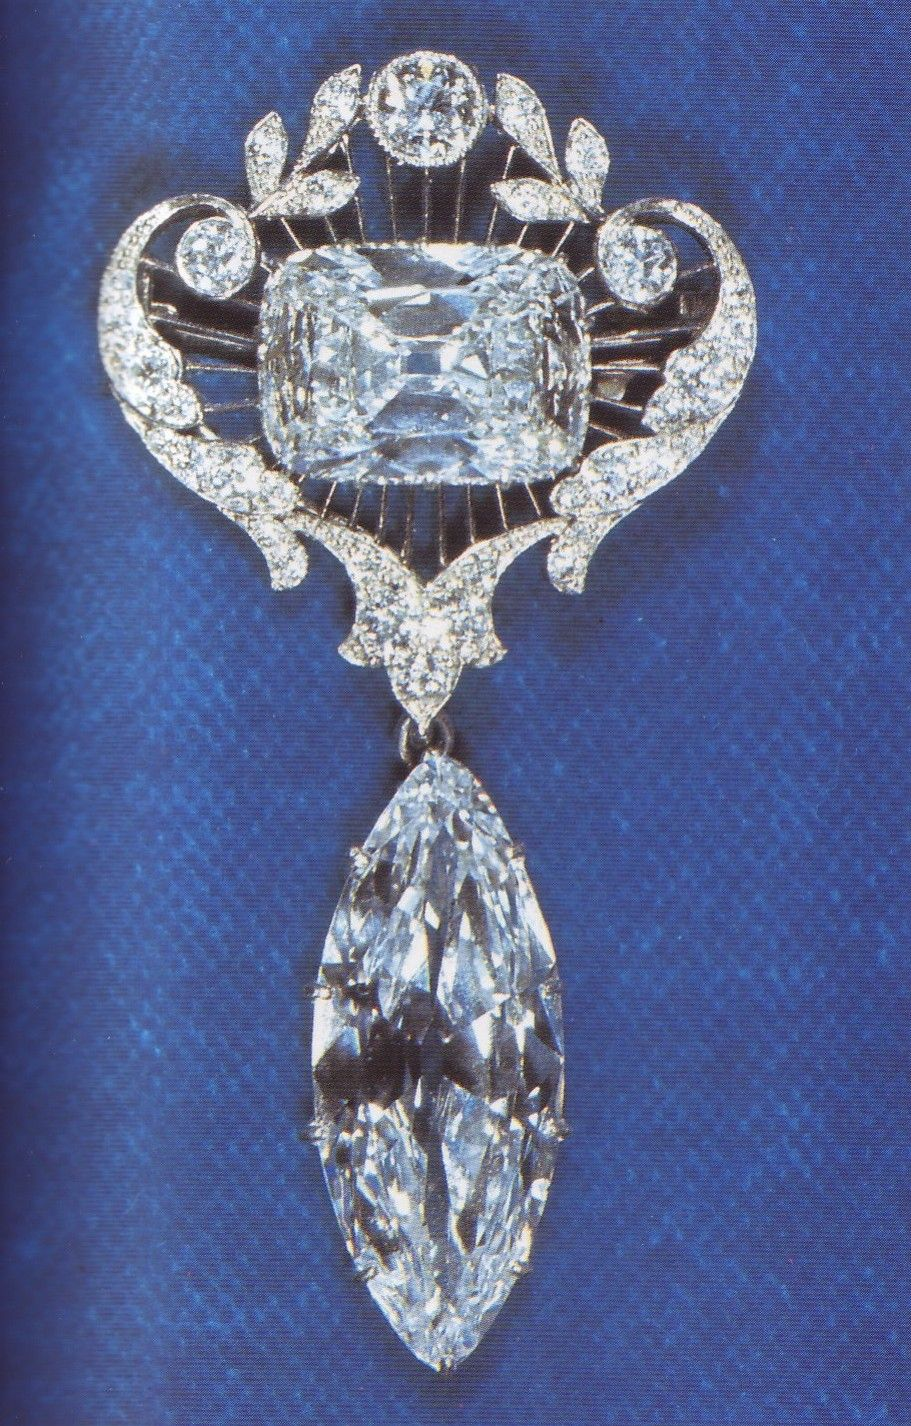 The Cullinan VII and Cullinan VIII Brooch: The Cullinan VII is an 8.8-carat marquise-cut stone. The Cullinan VIII is a 6.8-carat brilliant cut diamond. Queen Mary had this brooch made.